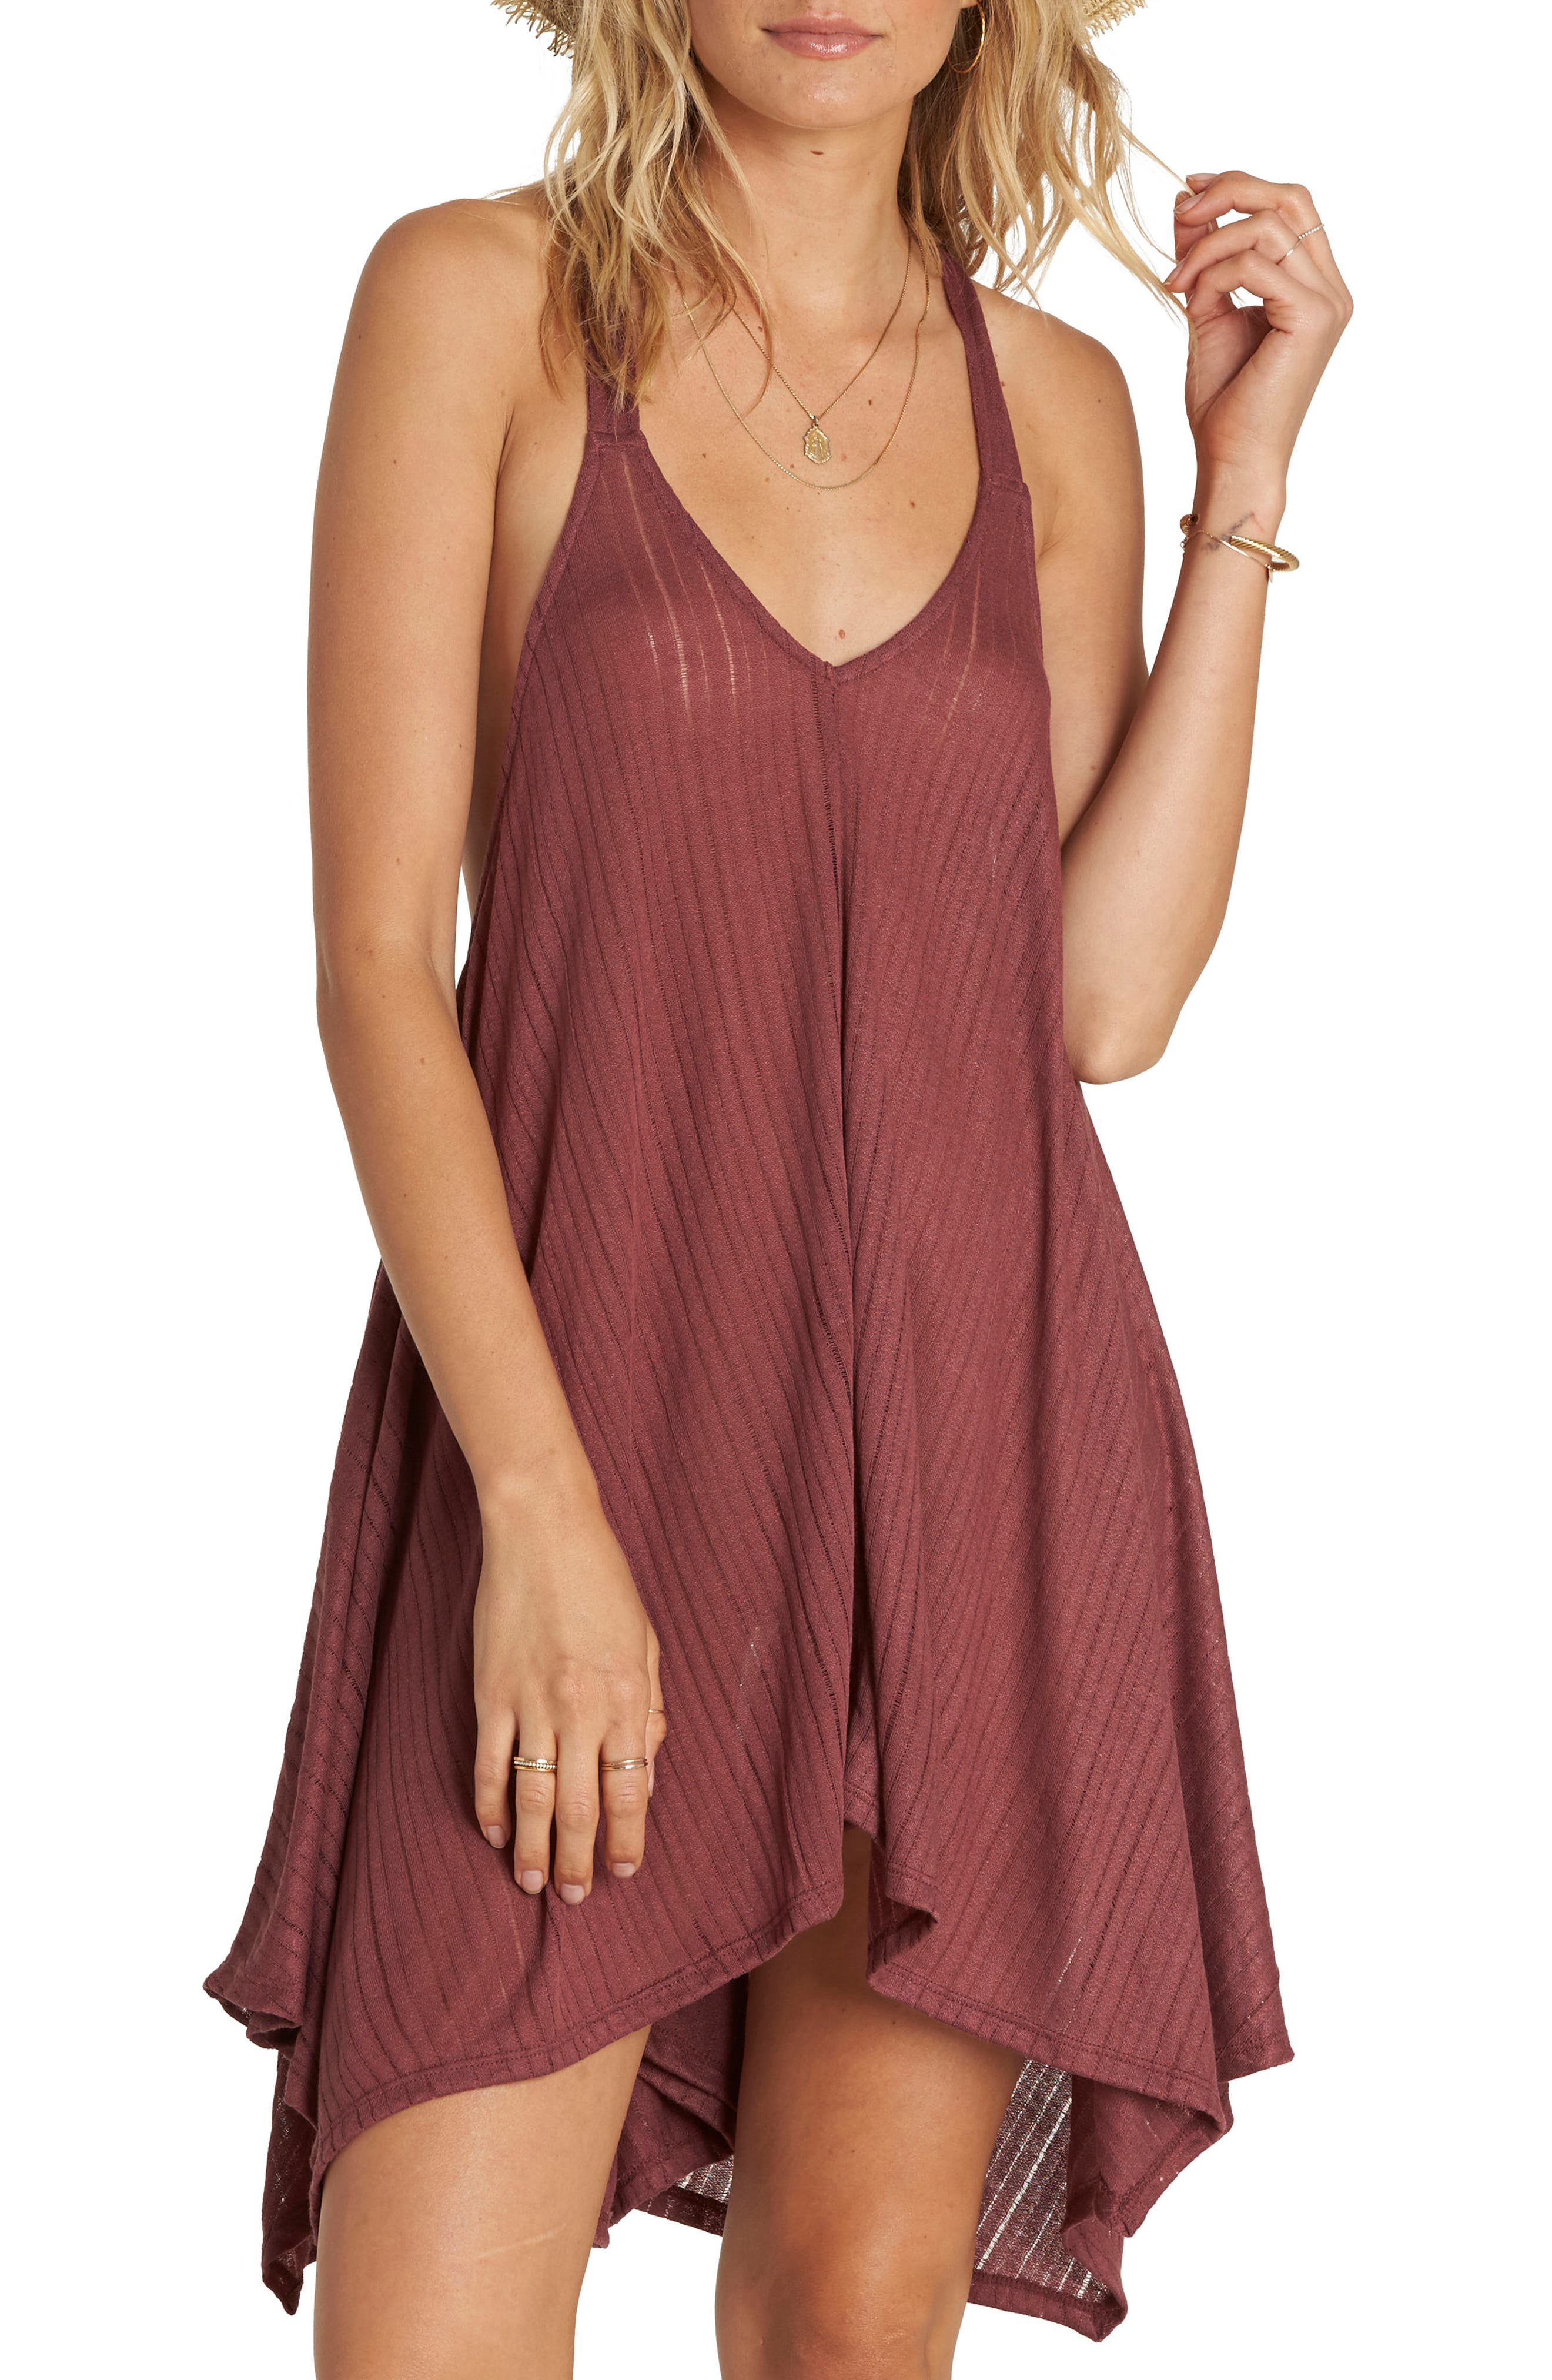 Alternate Image 1 Selected - Billabong Twisted View Cover-Up Dress